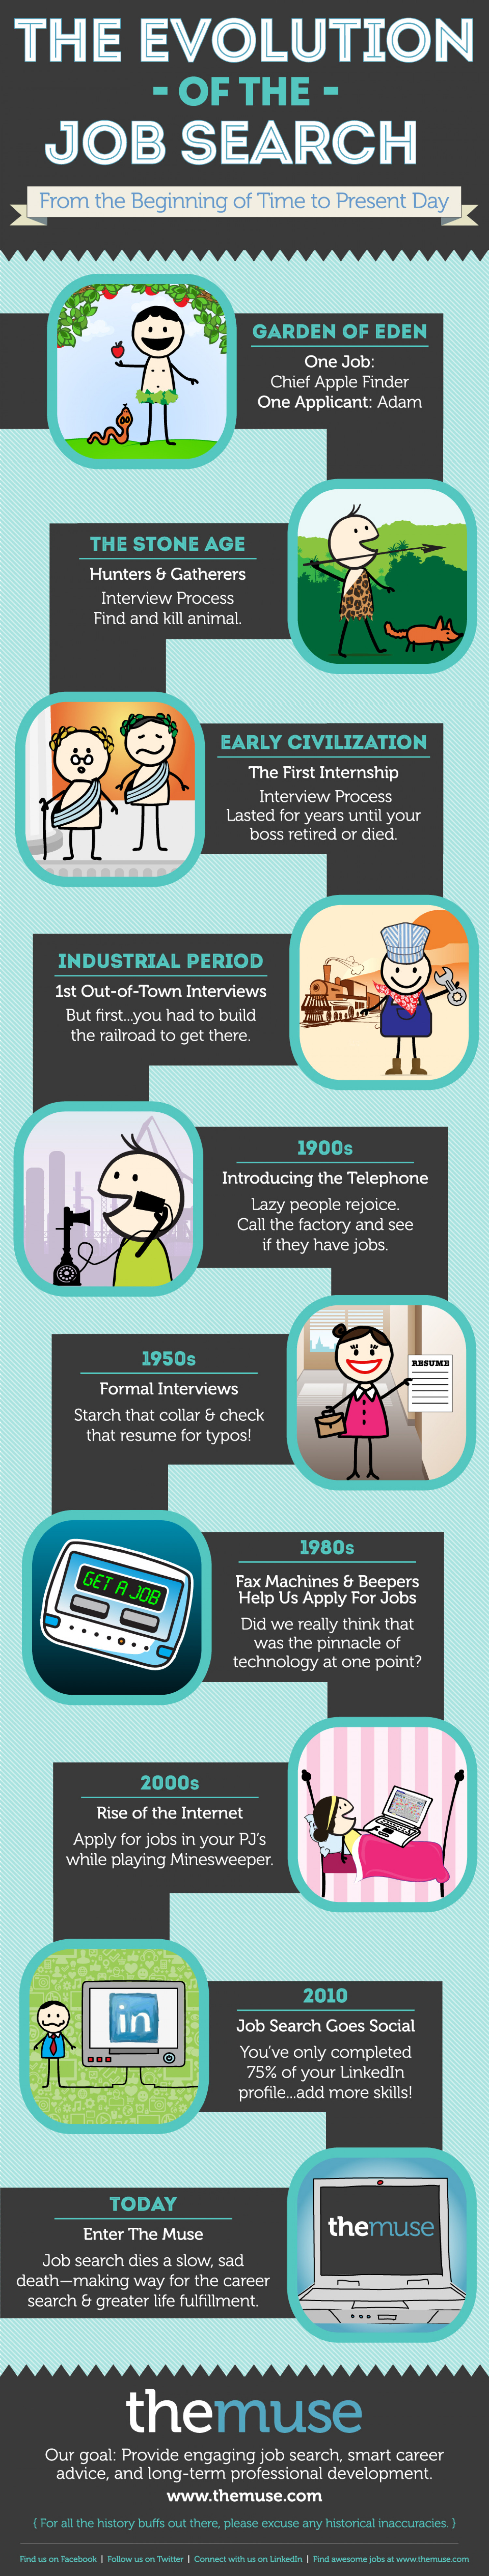 The Evolution of the Job Search Infographic